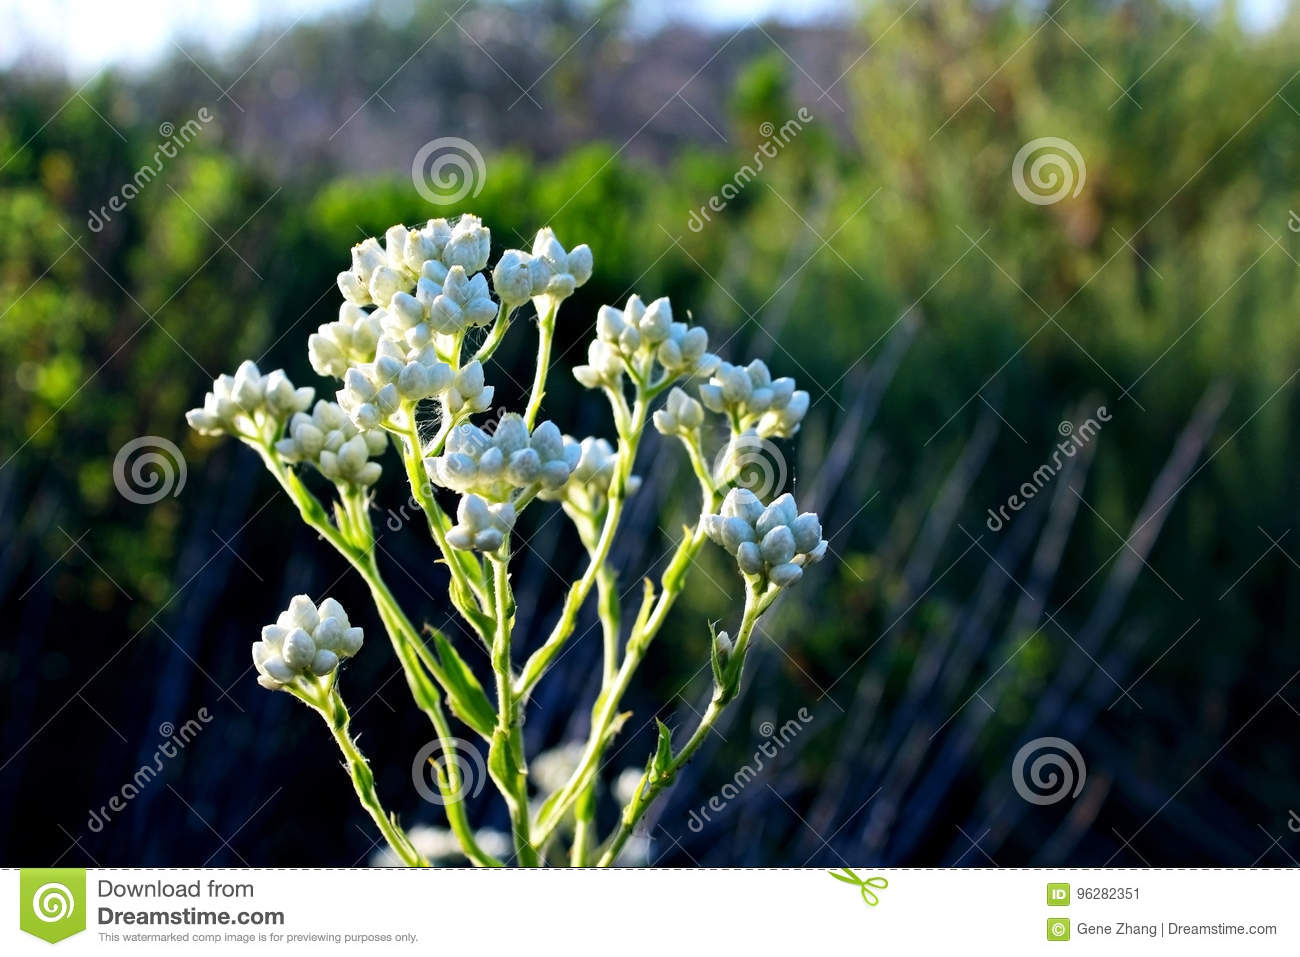 Pearly everlasting flowers in bloom stock image image of 2017 pearly everlasting flowers in bloom izmirmasajfo